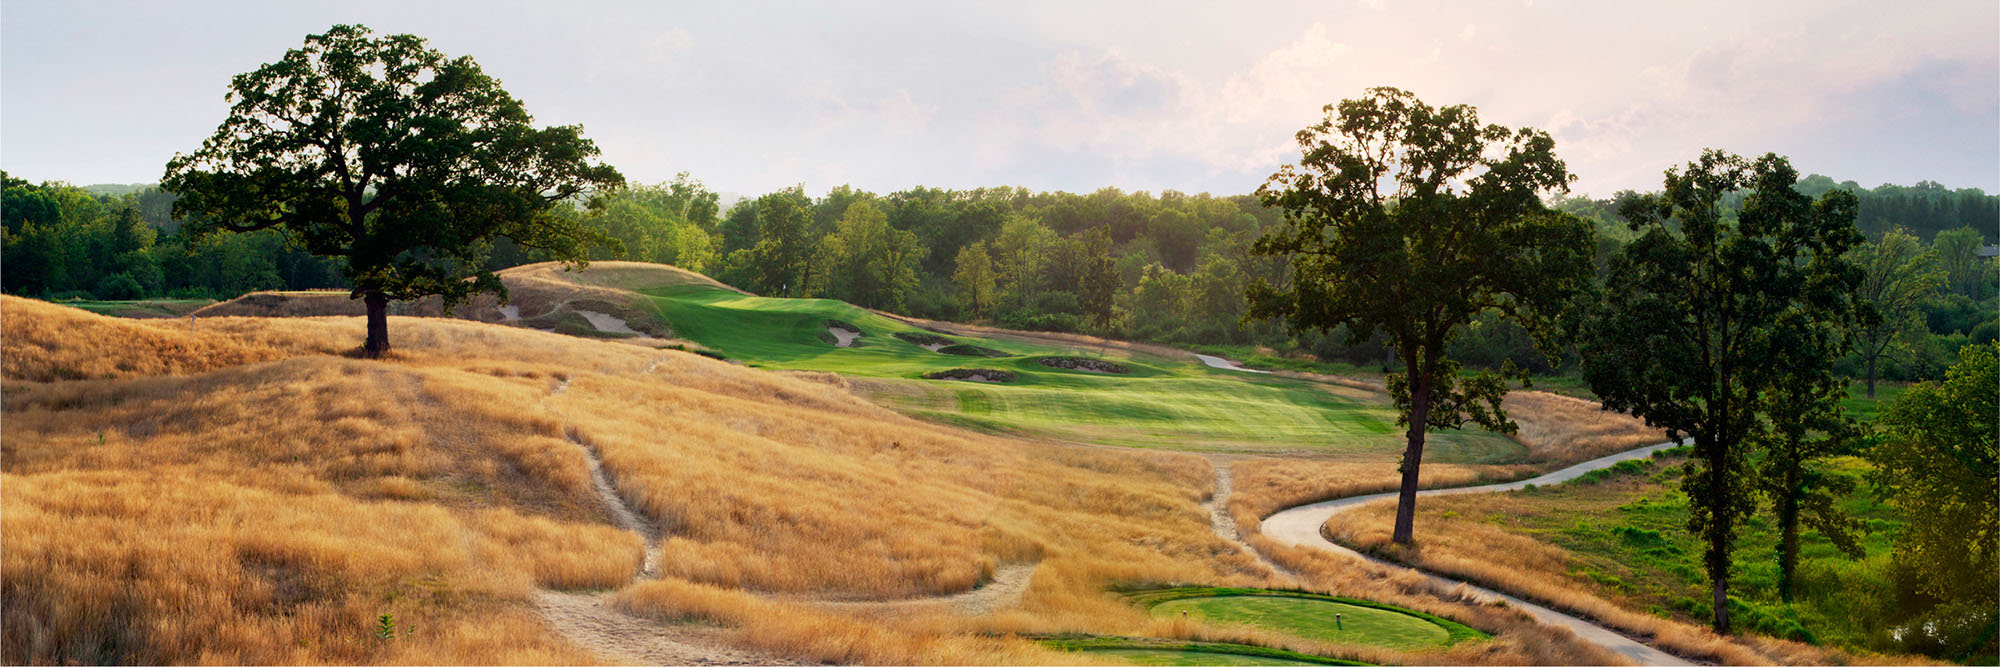 Golf Course Image - Erin Hills No. 15